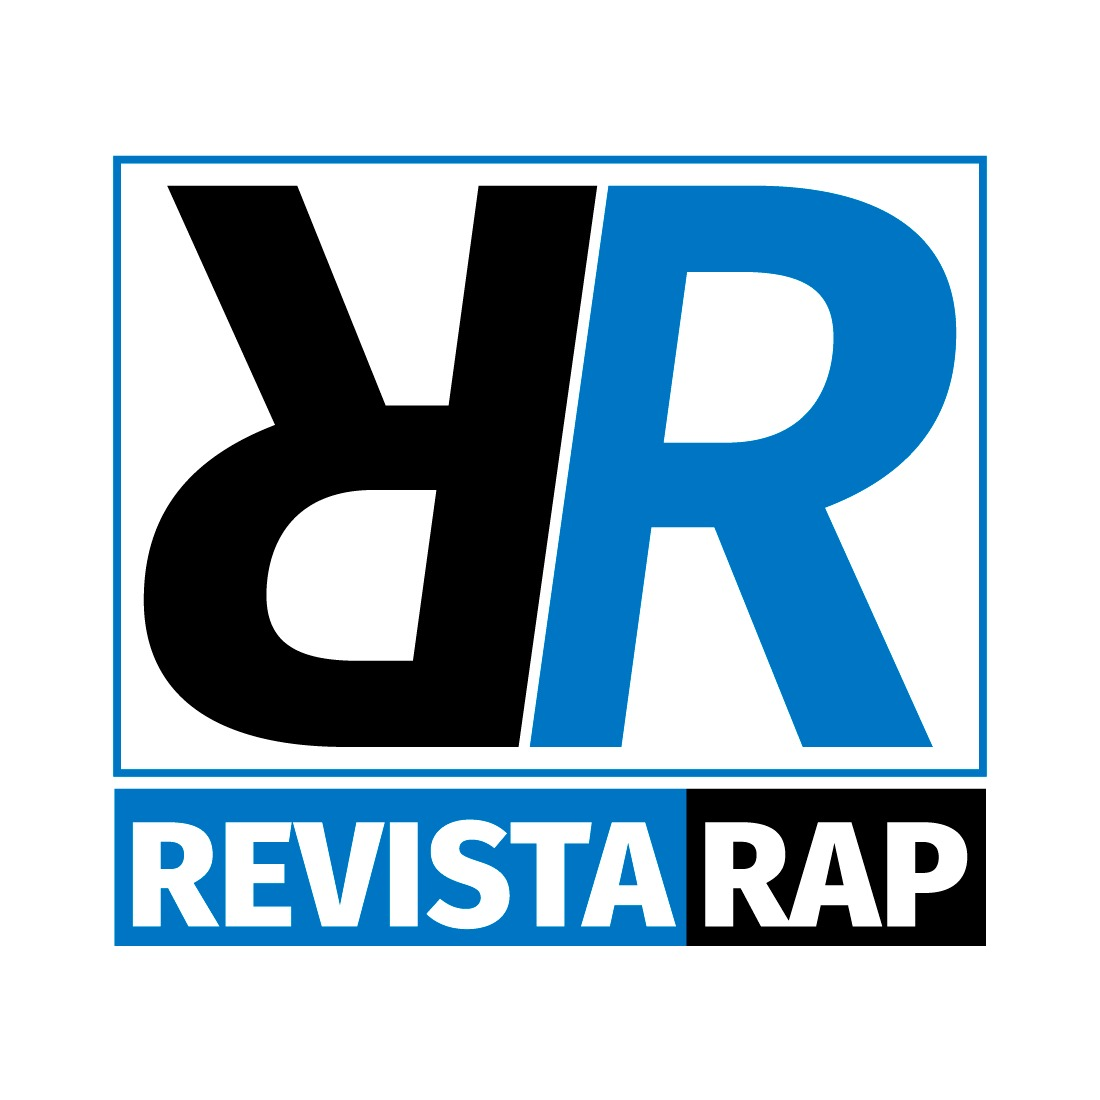 Revista Rap Novo Logo